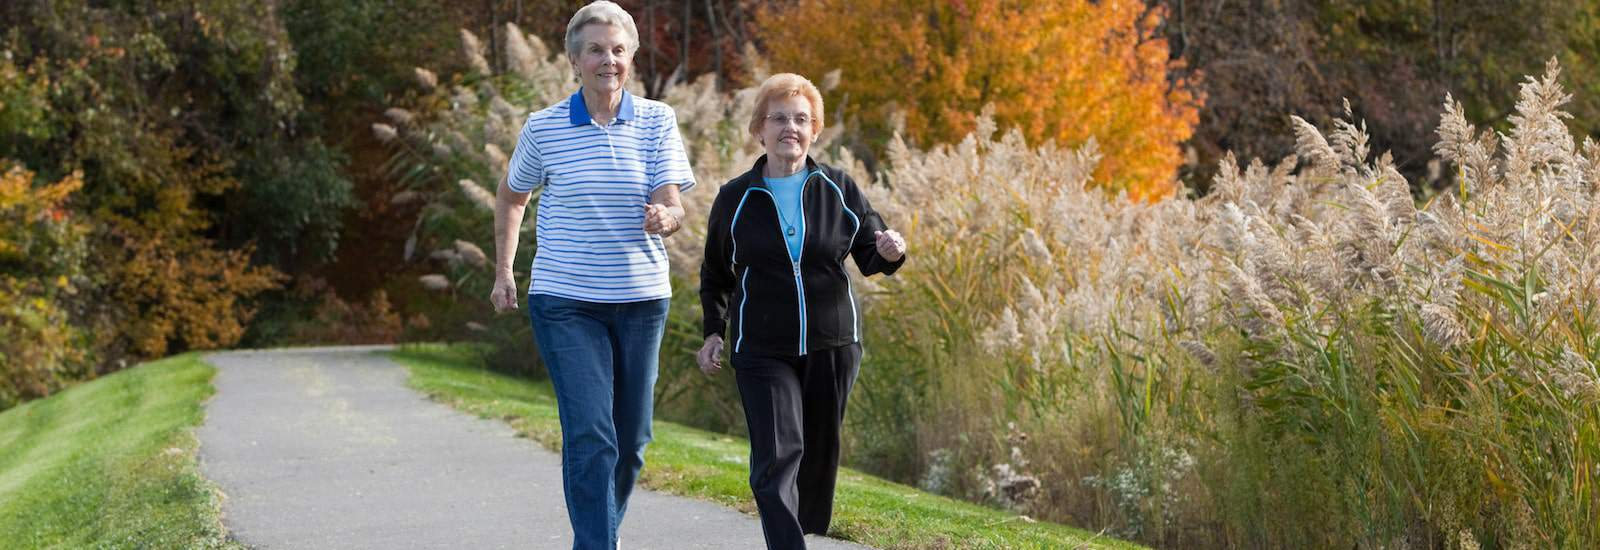 Top Exercises for Those With Arthritis